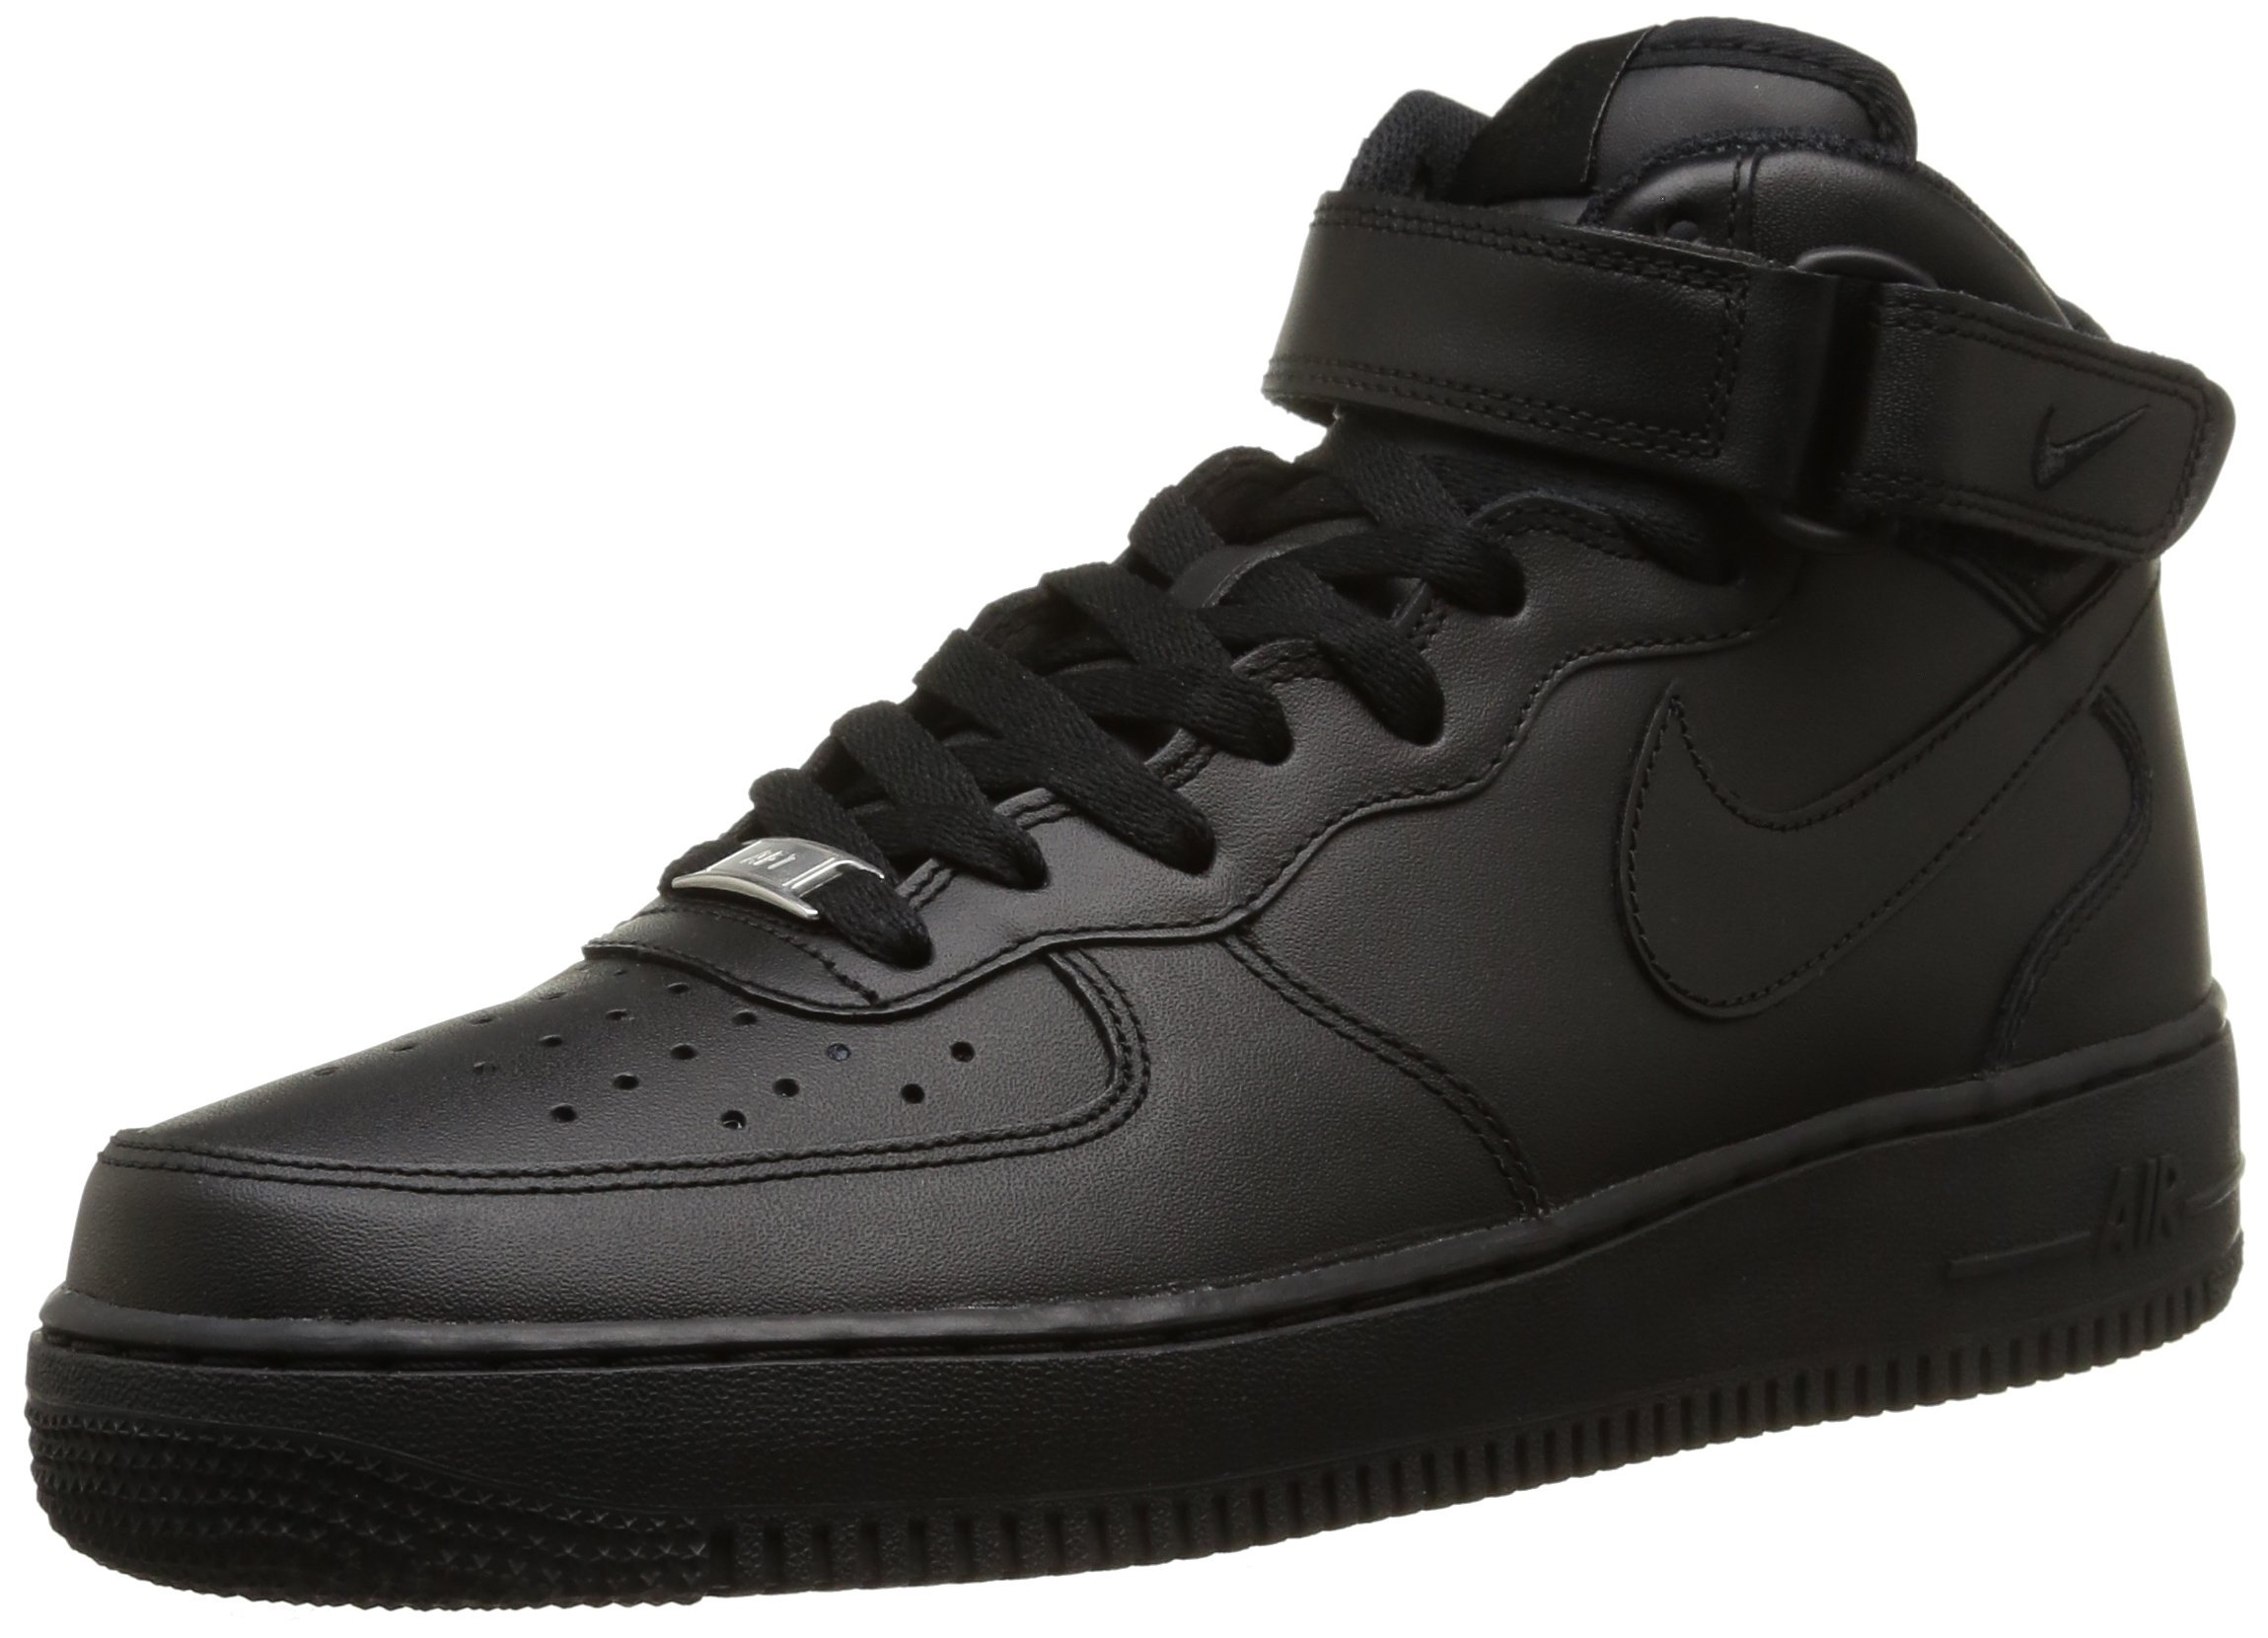 low priced 431be 6bd6f Galleon - Nike Air Force 1 Mid 07 Mens Hi Top Trainers 315123 Sneakers Shoes  (UK 6 US 7 EU 40, Black Black Black 001)